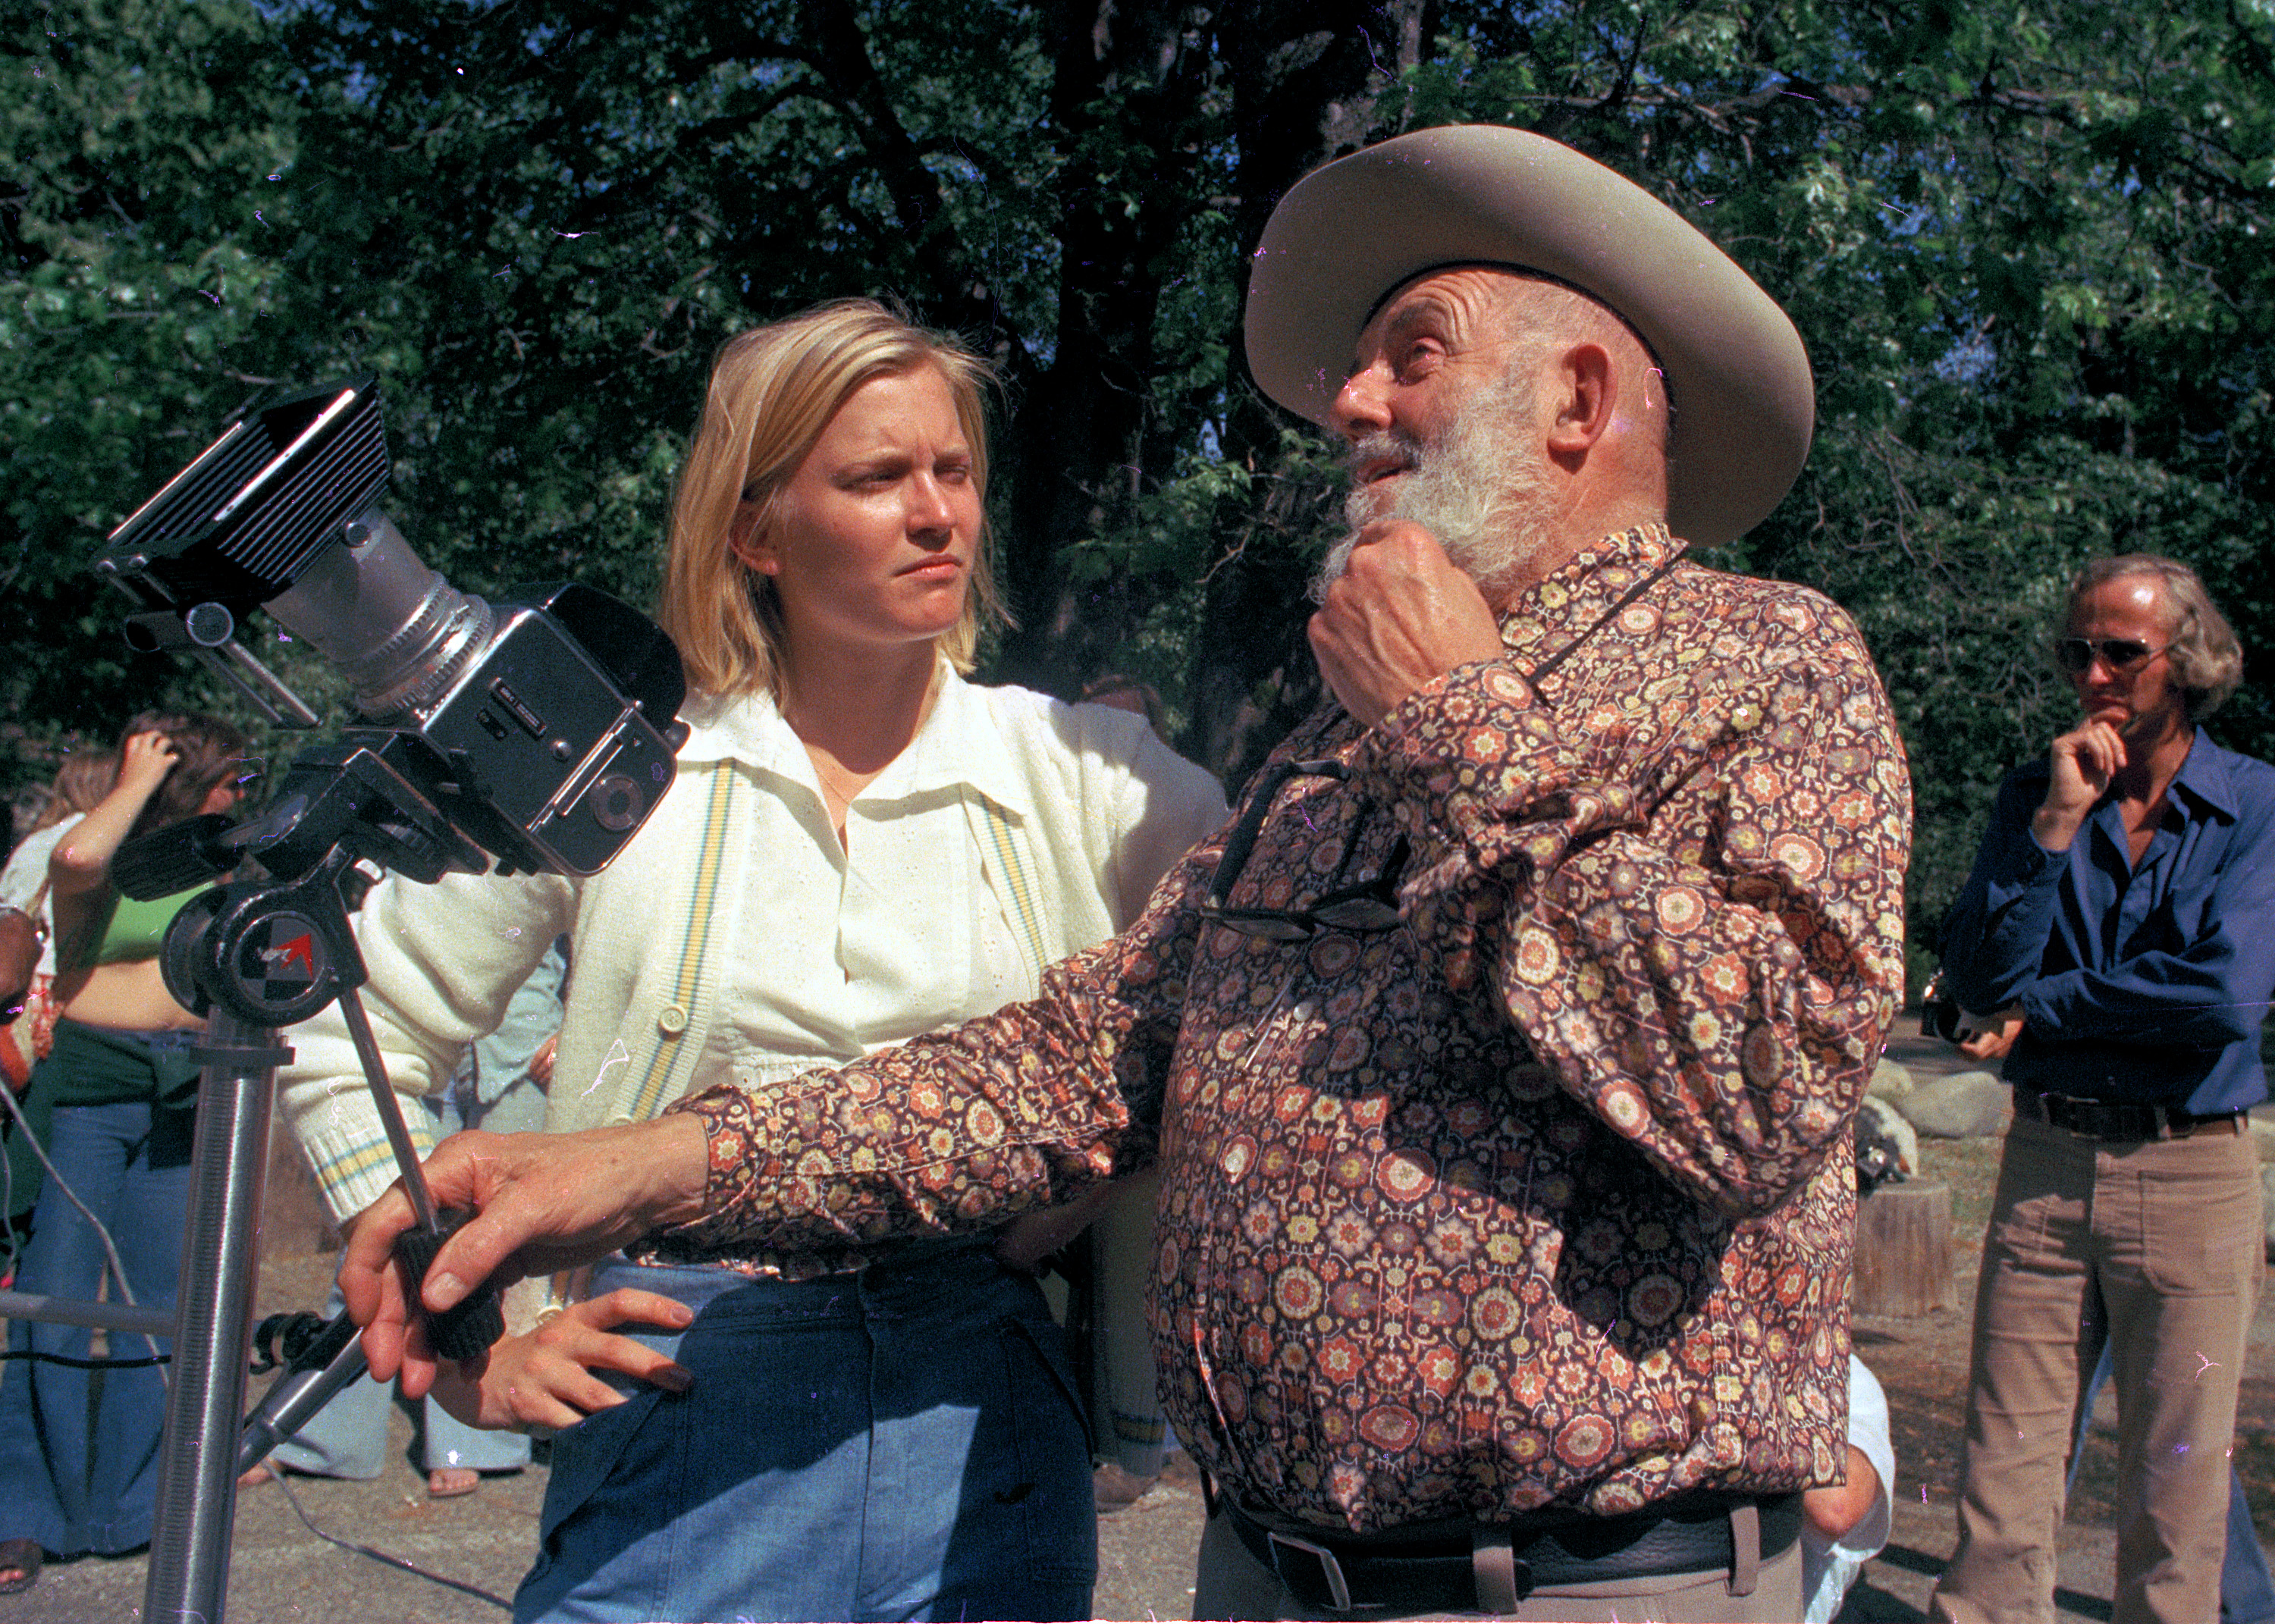 Susan Ford, daughter of President Gerald Ford, learns photography from Ansel Adams at his gallery near Yosemite National Park, June 1975.  (AP Photo)